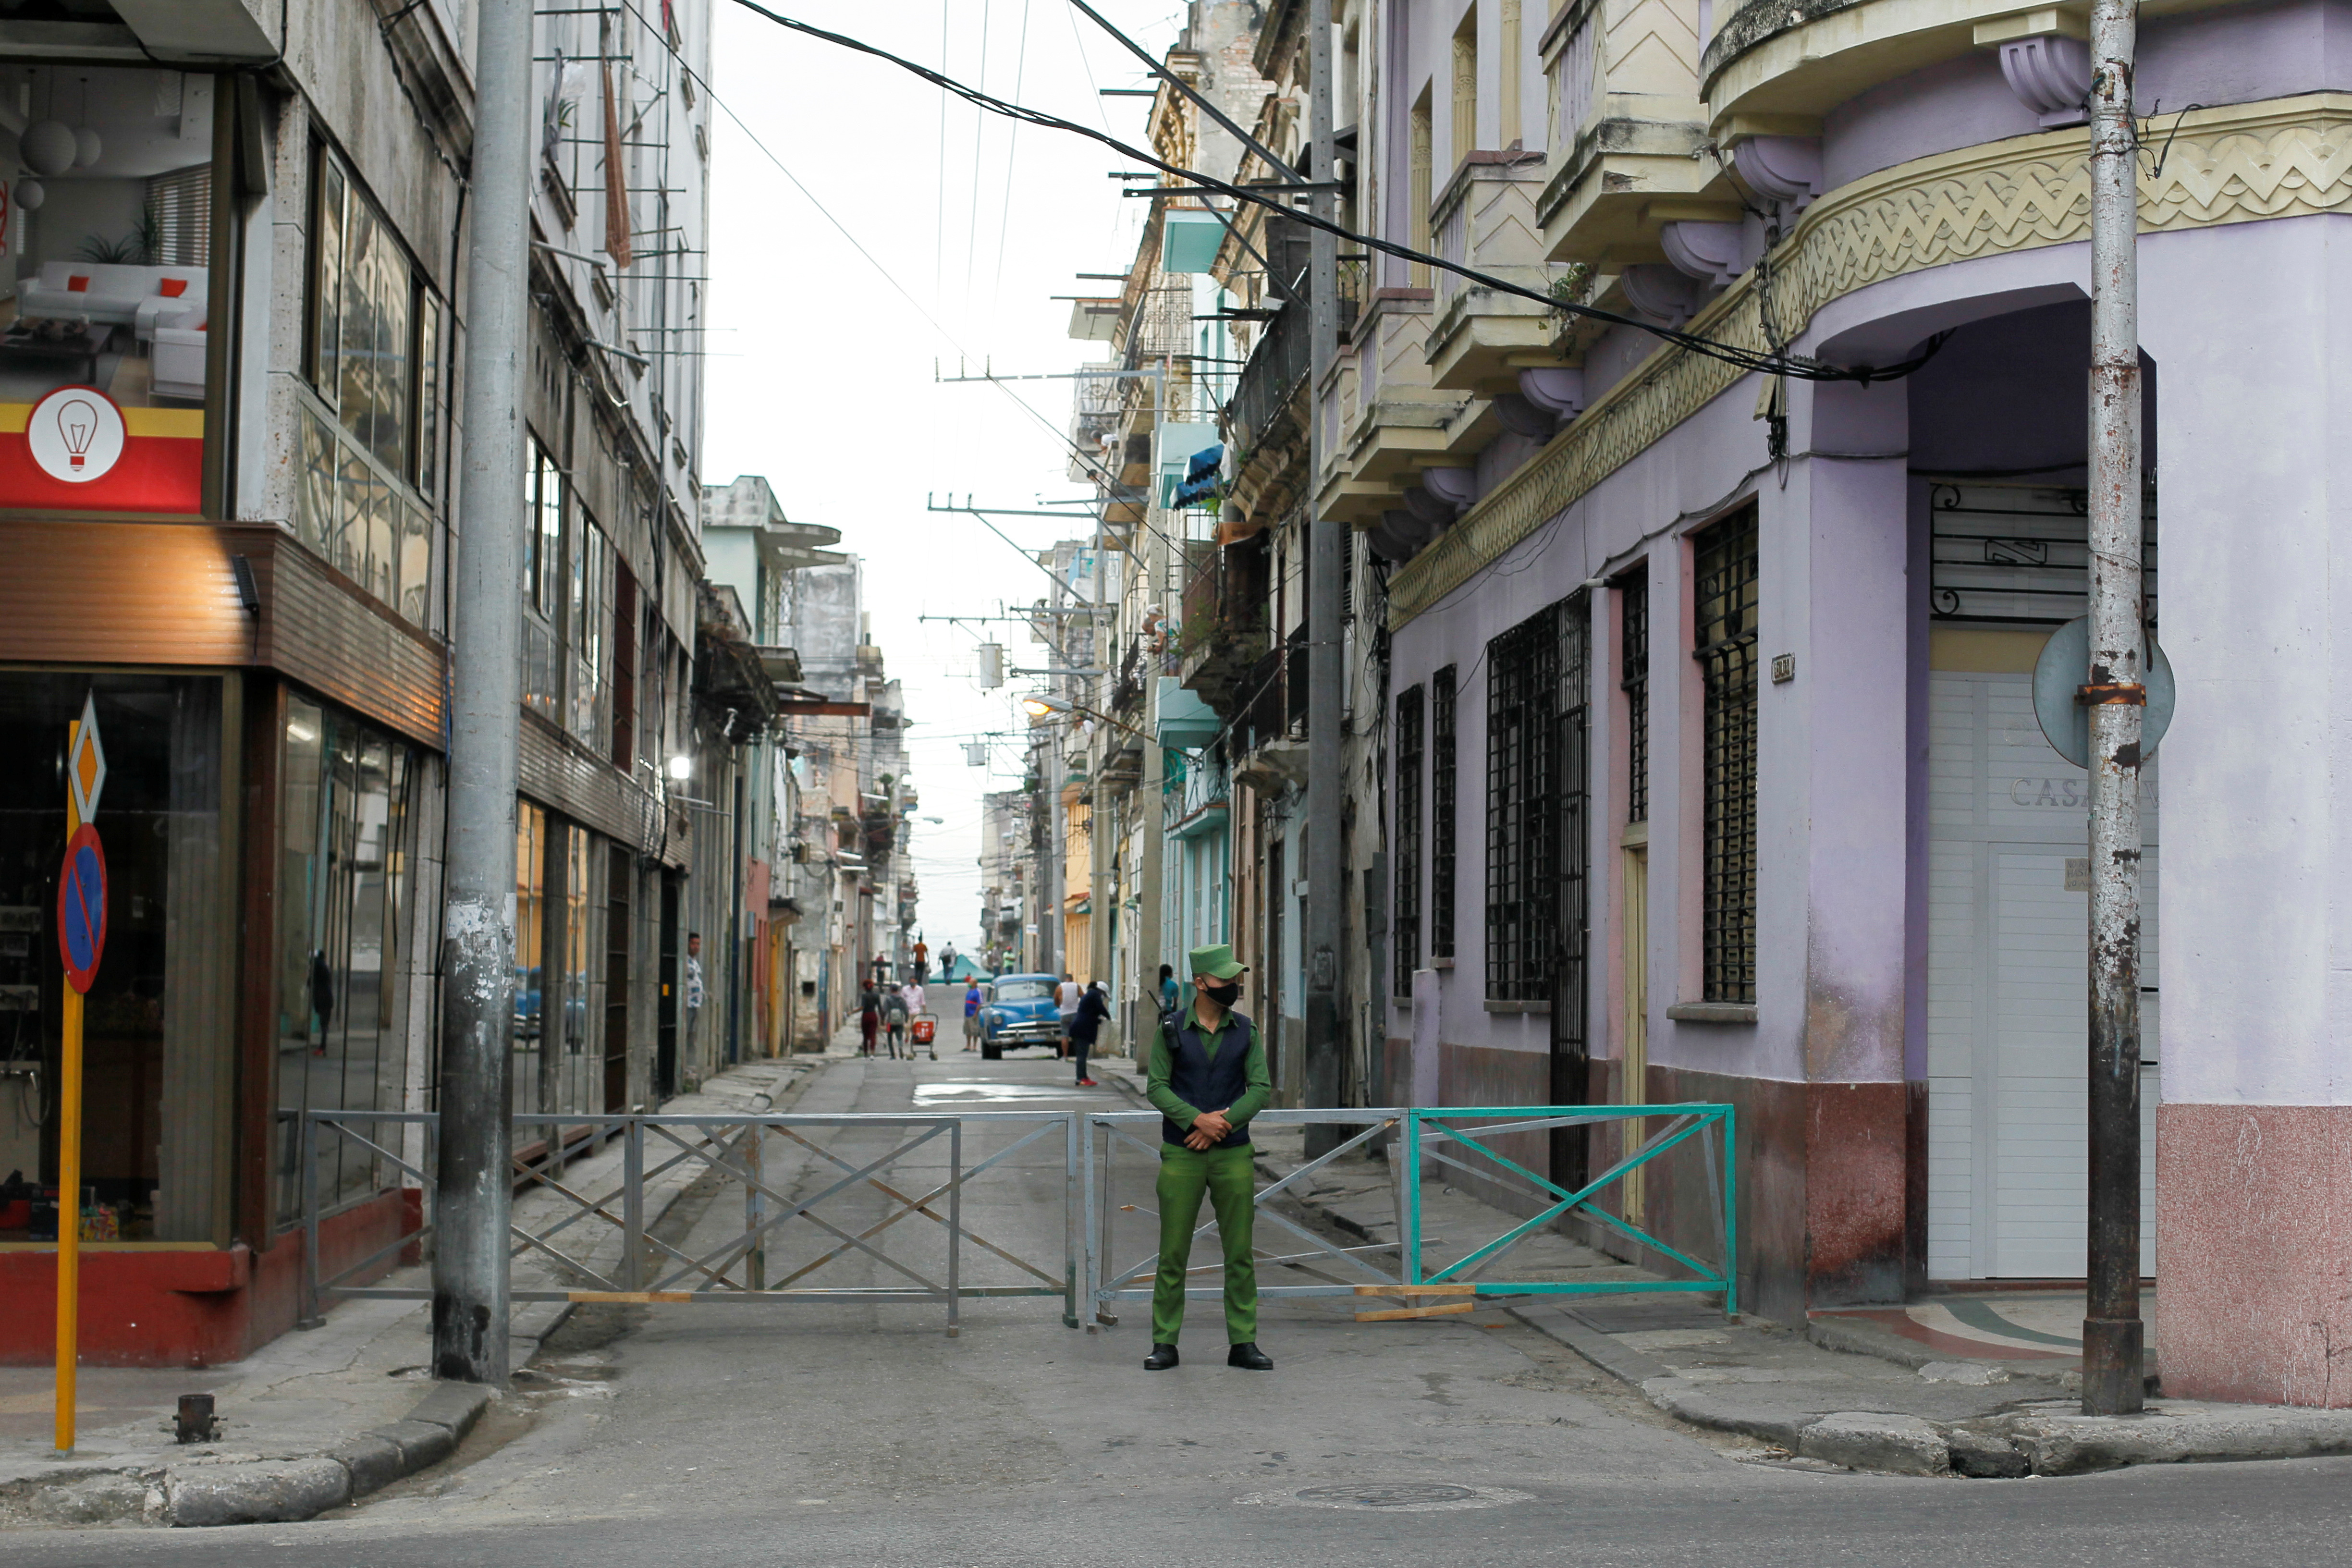 A police officer stands in front of a street in quarantine amid concerns about the spread of the coronavirus disease (COVID-19) in Havana, Cuba, February 1, 2021. REUTERS/Stringer